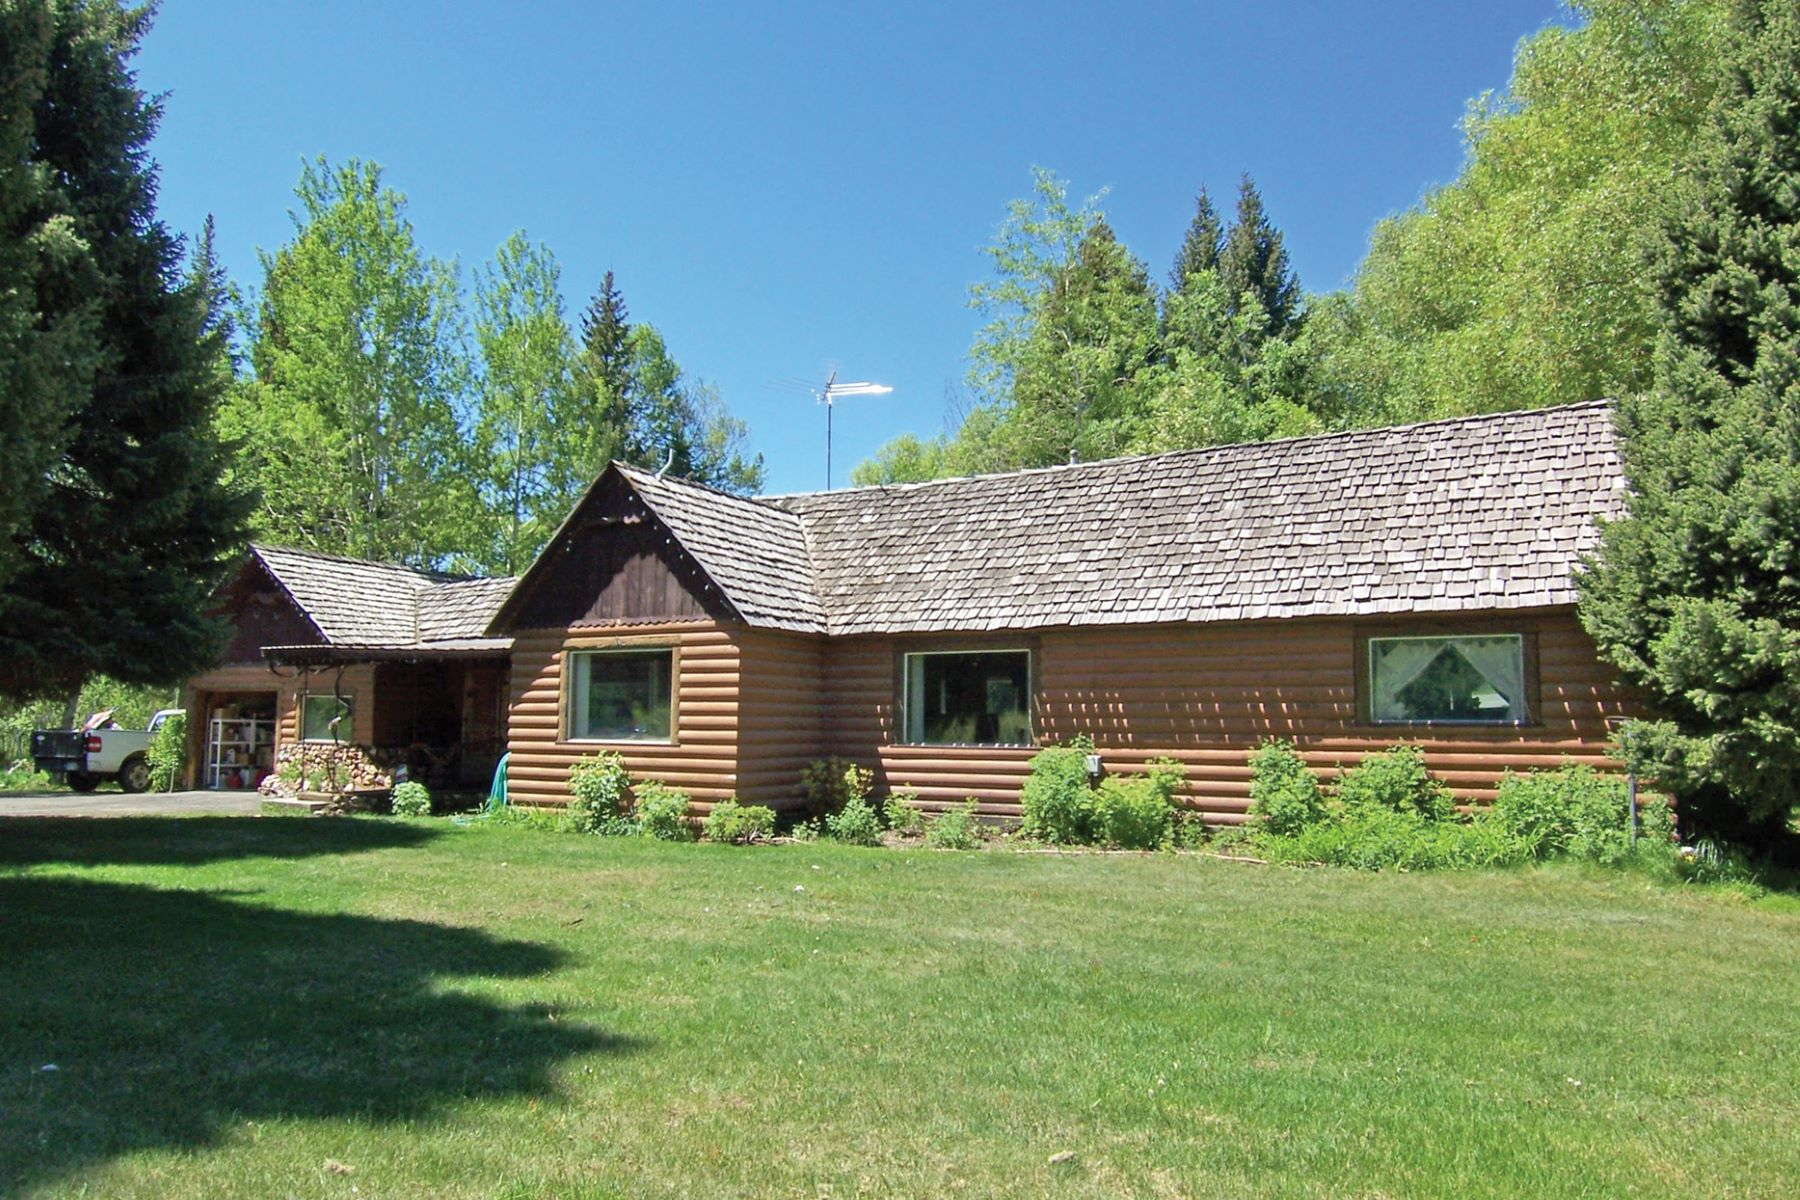 Maison unifamiliale pour l Vente à 2 Homes on 11 Acres on Driggs Main St. 552 South Hwy 33 (Main Street), Driggs, Idaho, 83422 Jackson Hole, États-Unis